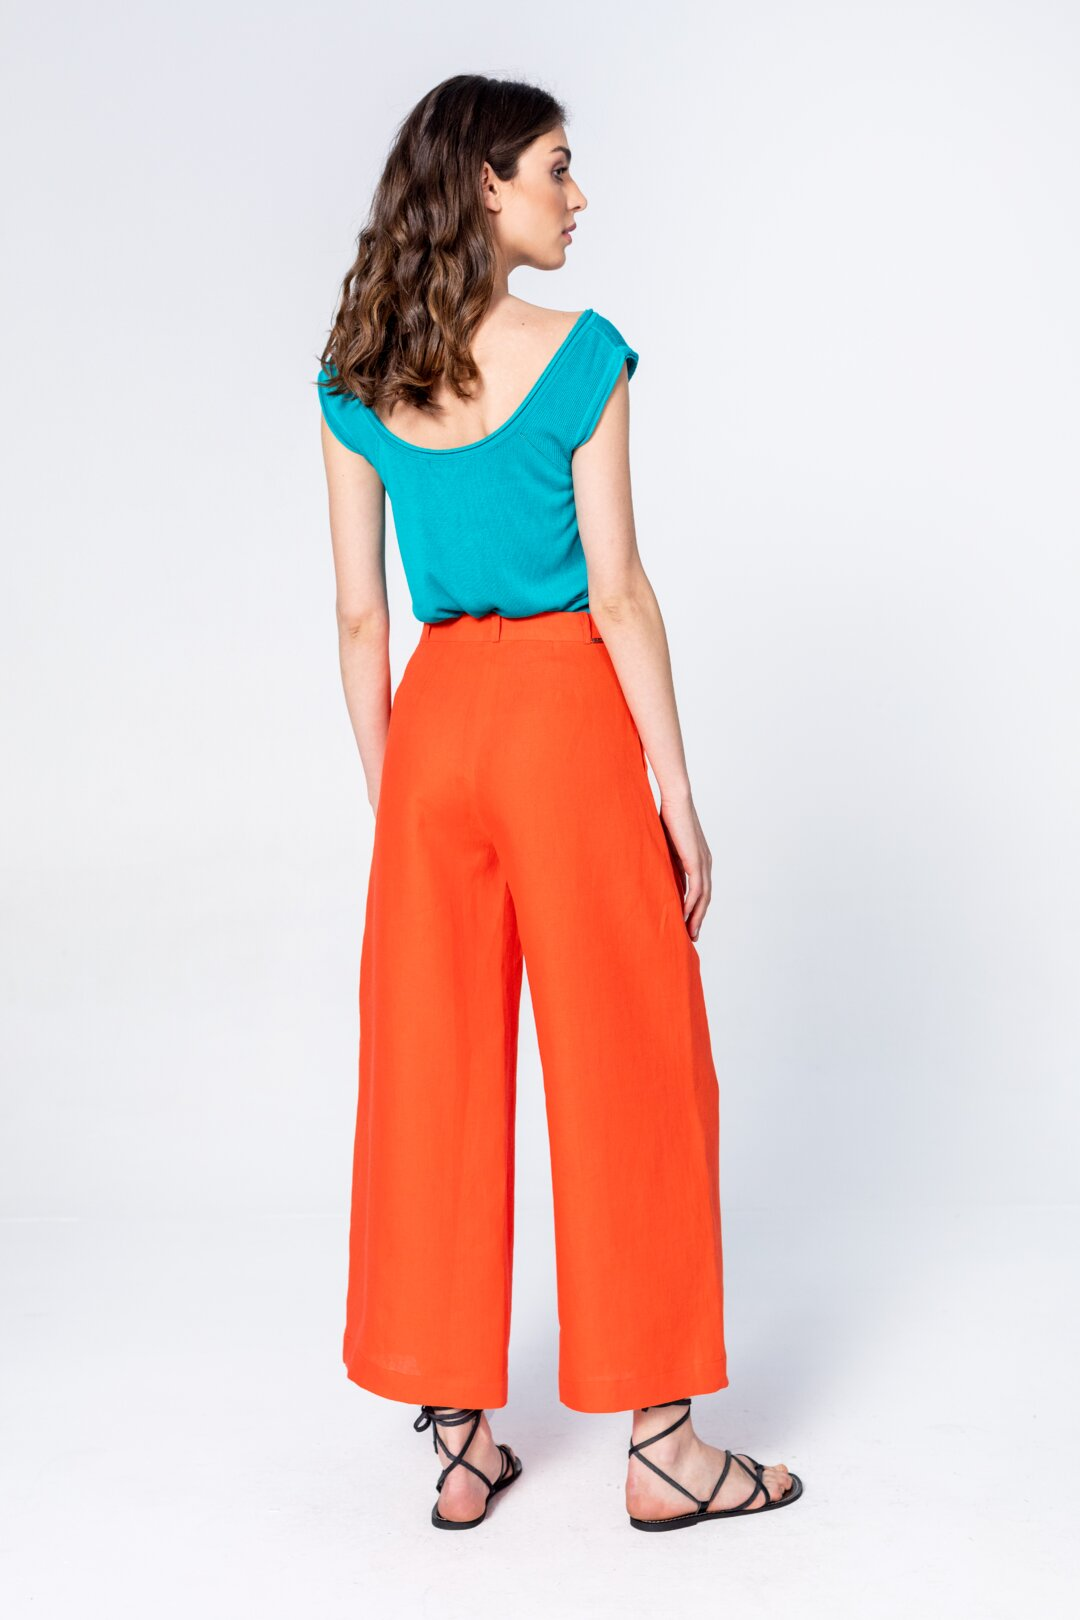 outfit-20143235d